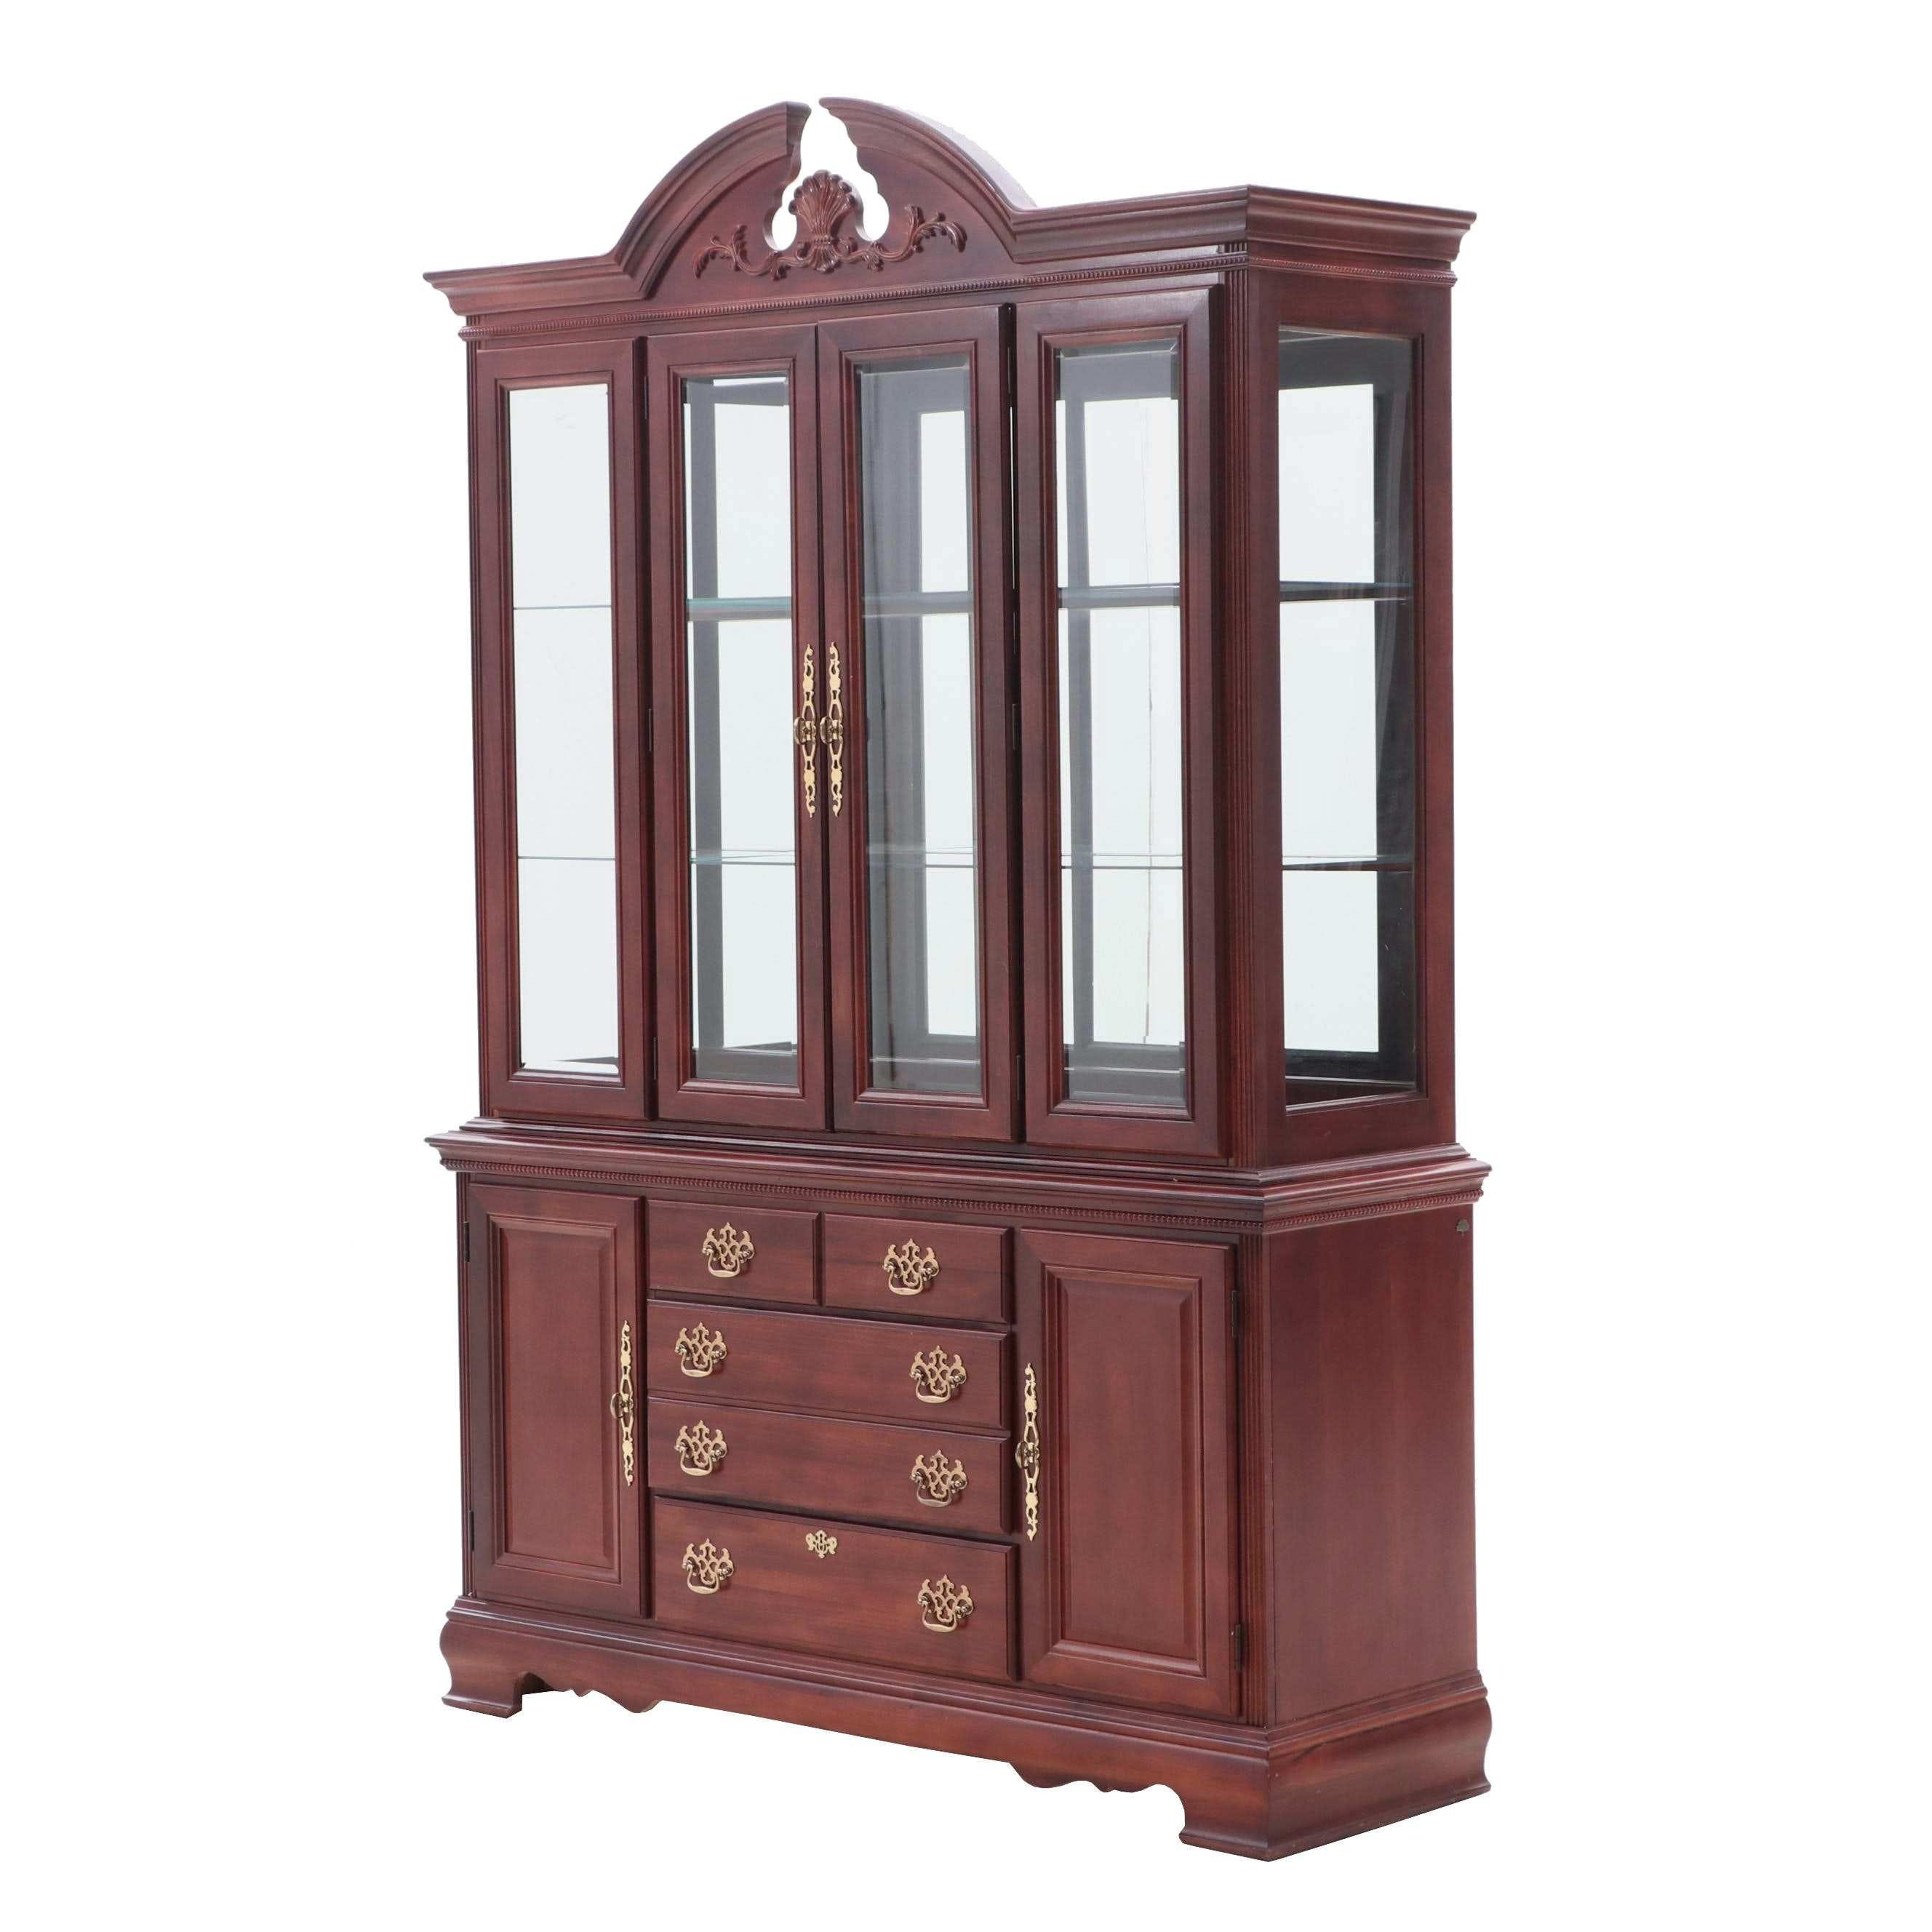 Traditional Style Illuminated China Cabinet by American Drew in Mahogany